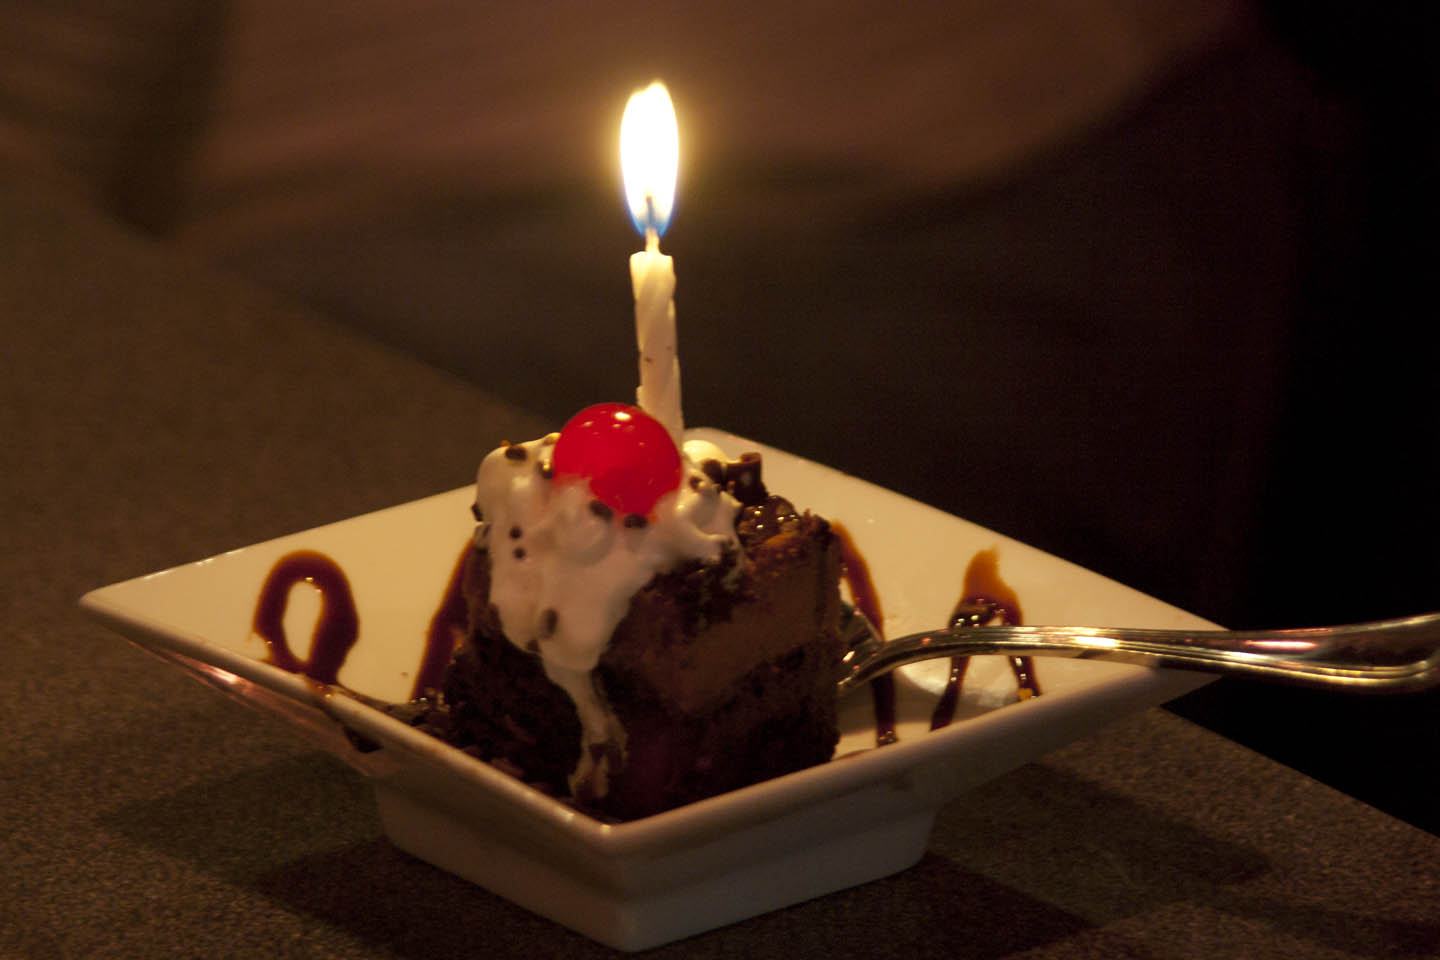 Image Of Birthday Cake With One Candle : Dr. Andy s Birthday Celebration Edition of the de Vere s ...